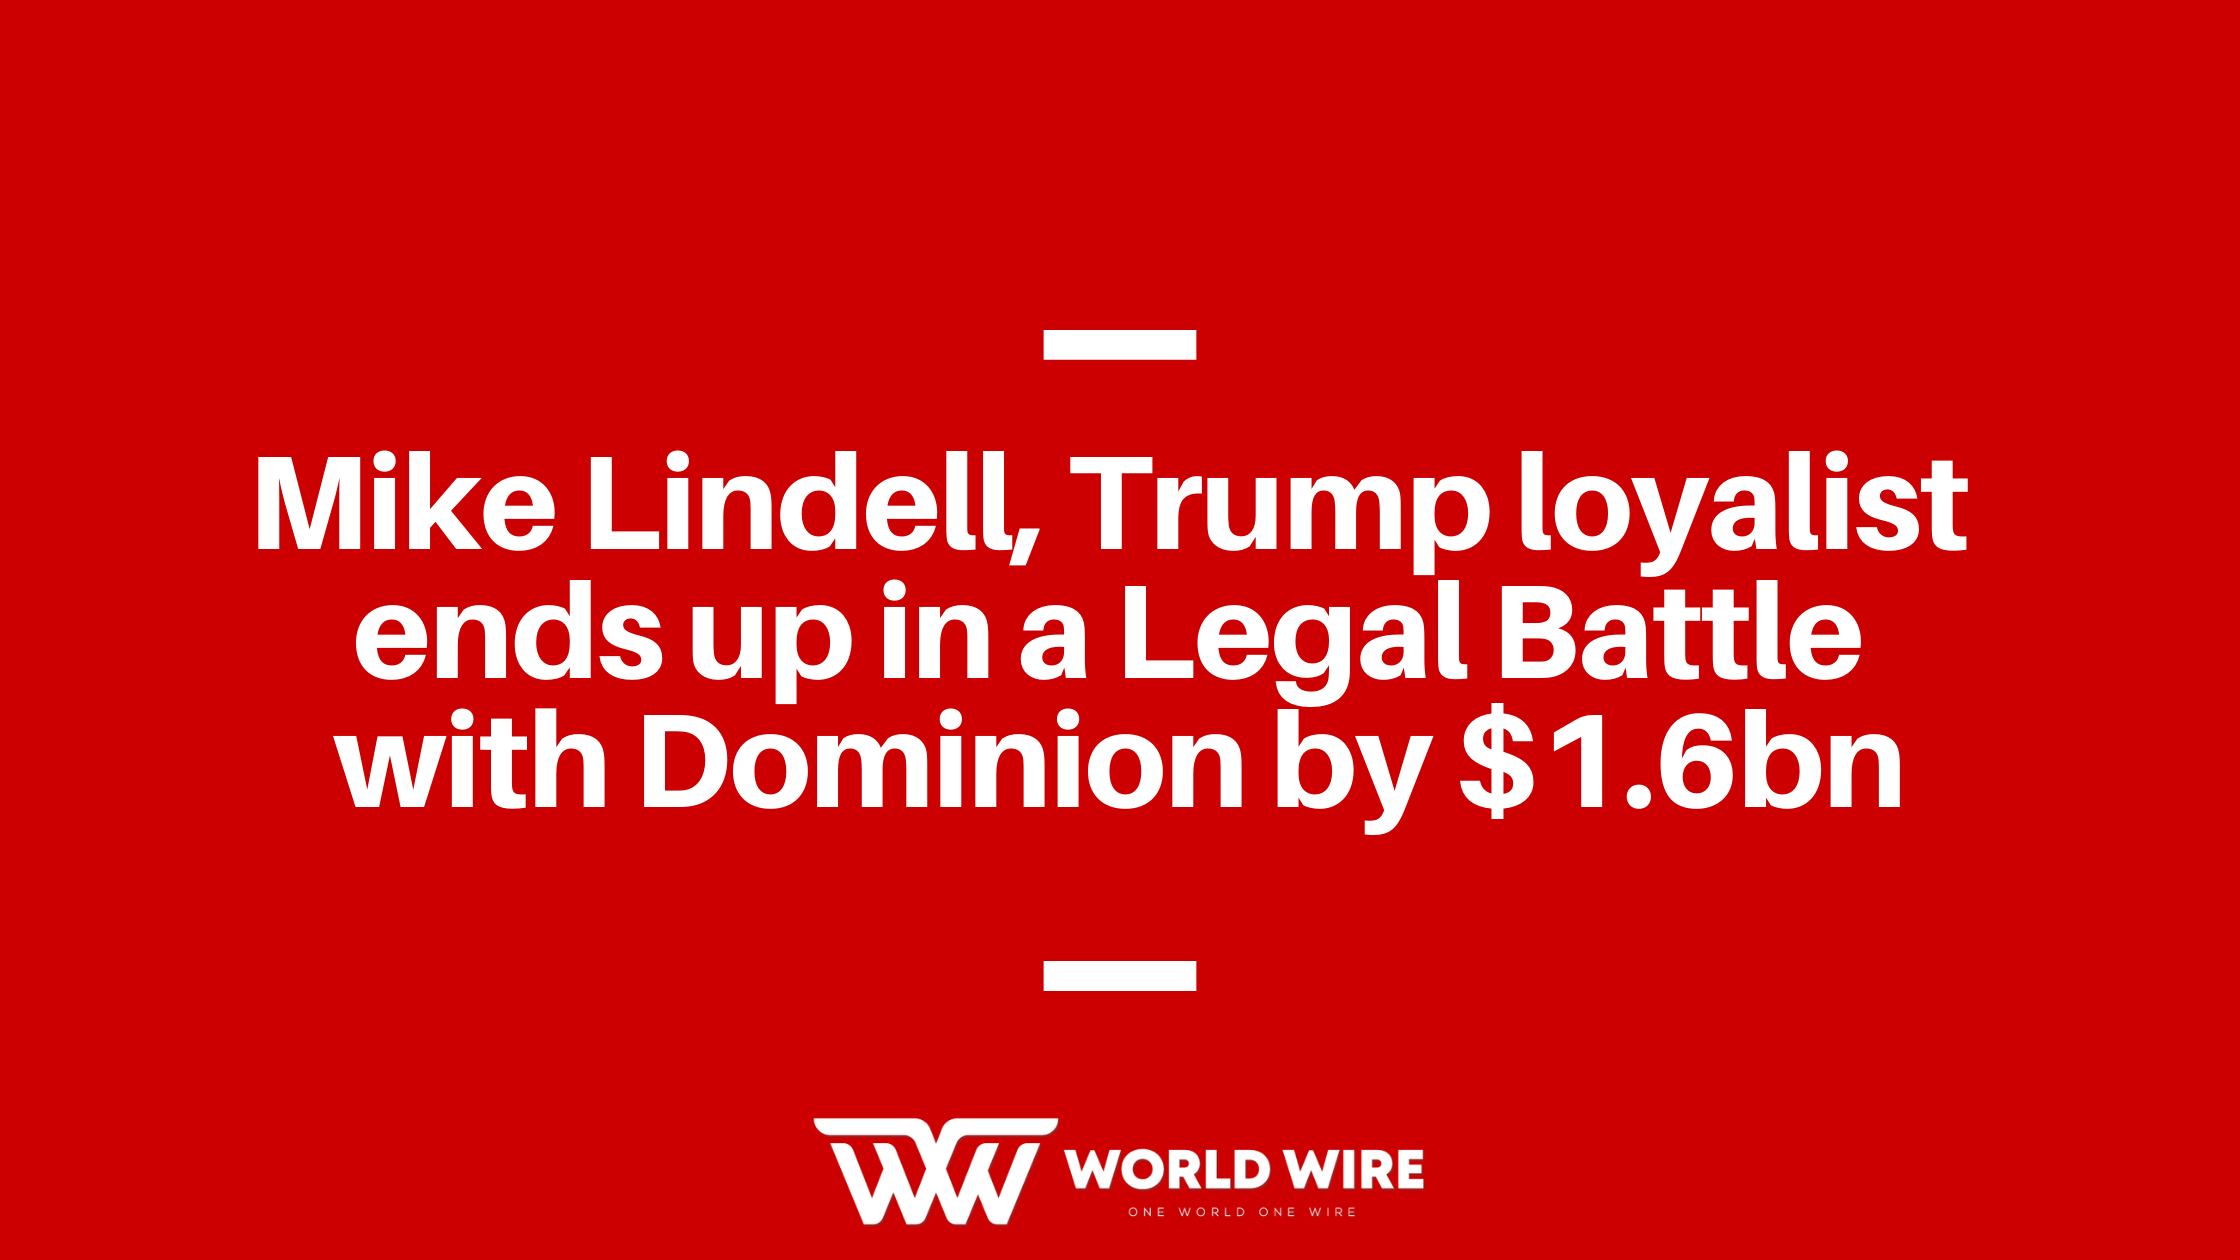 Mike Lindell, Trump loyalist ends up in a Legal Battle with Dominion by $1.6bn